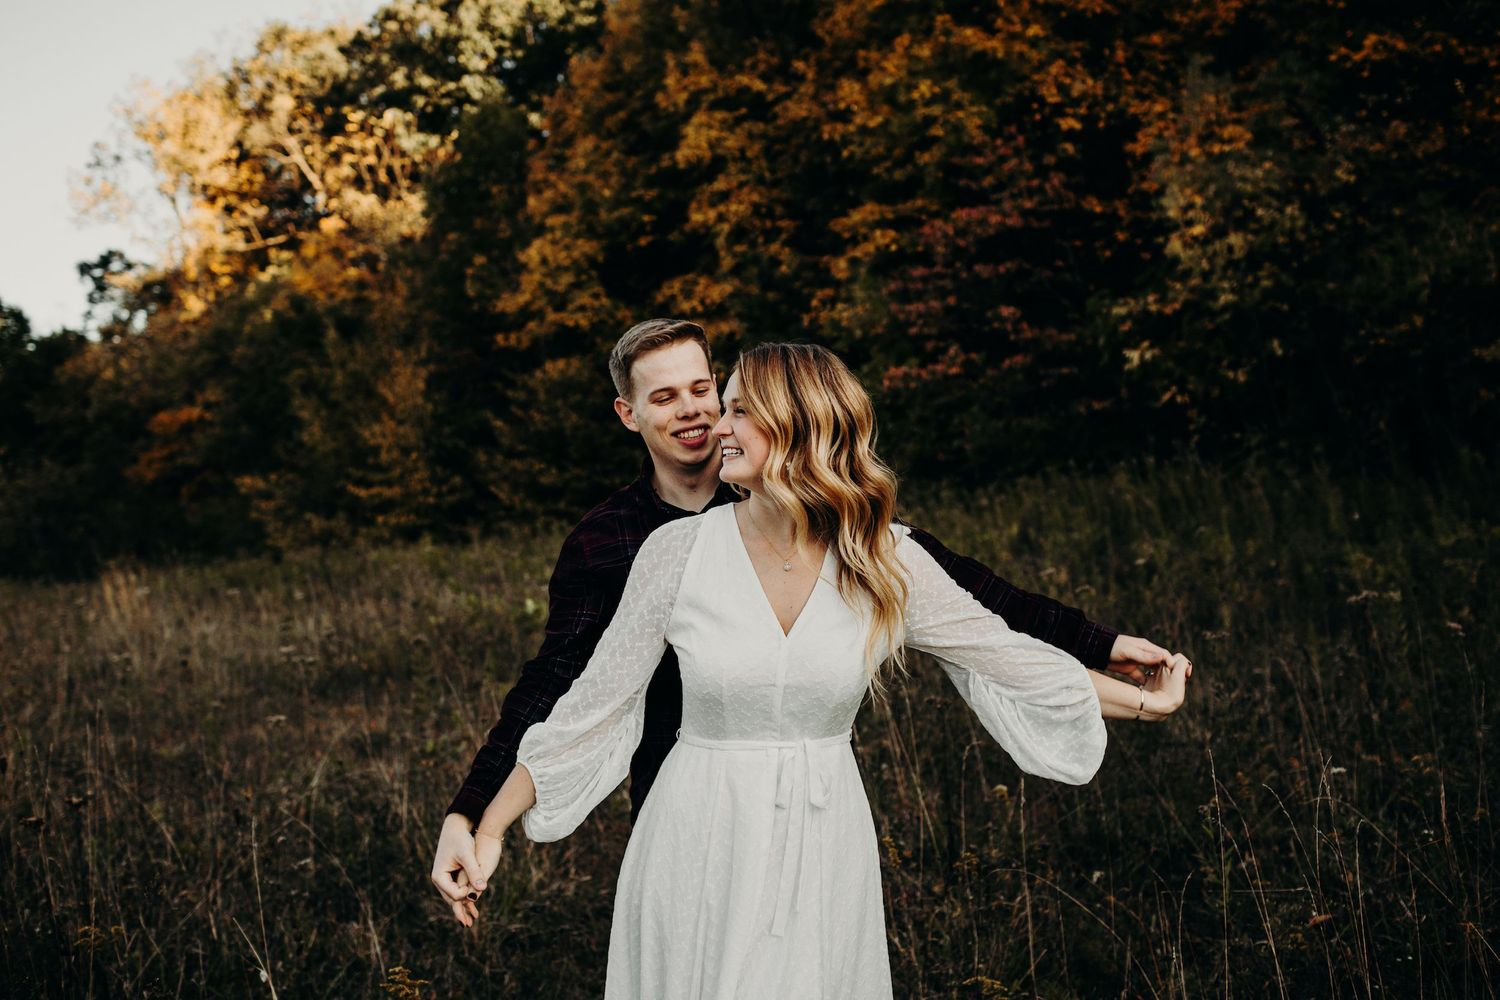 Highbanks Metro Park Engagement Photos